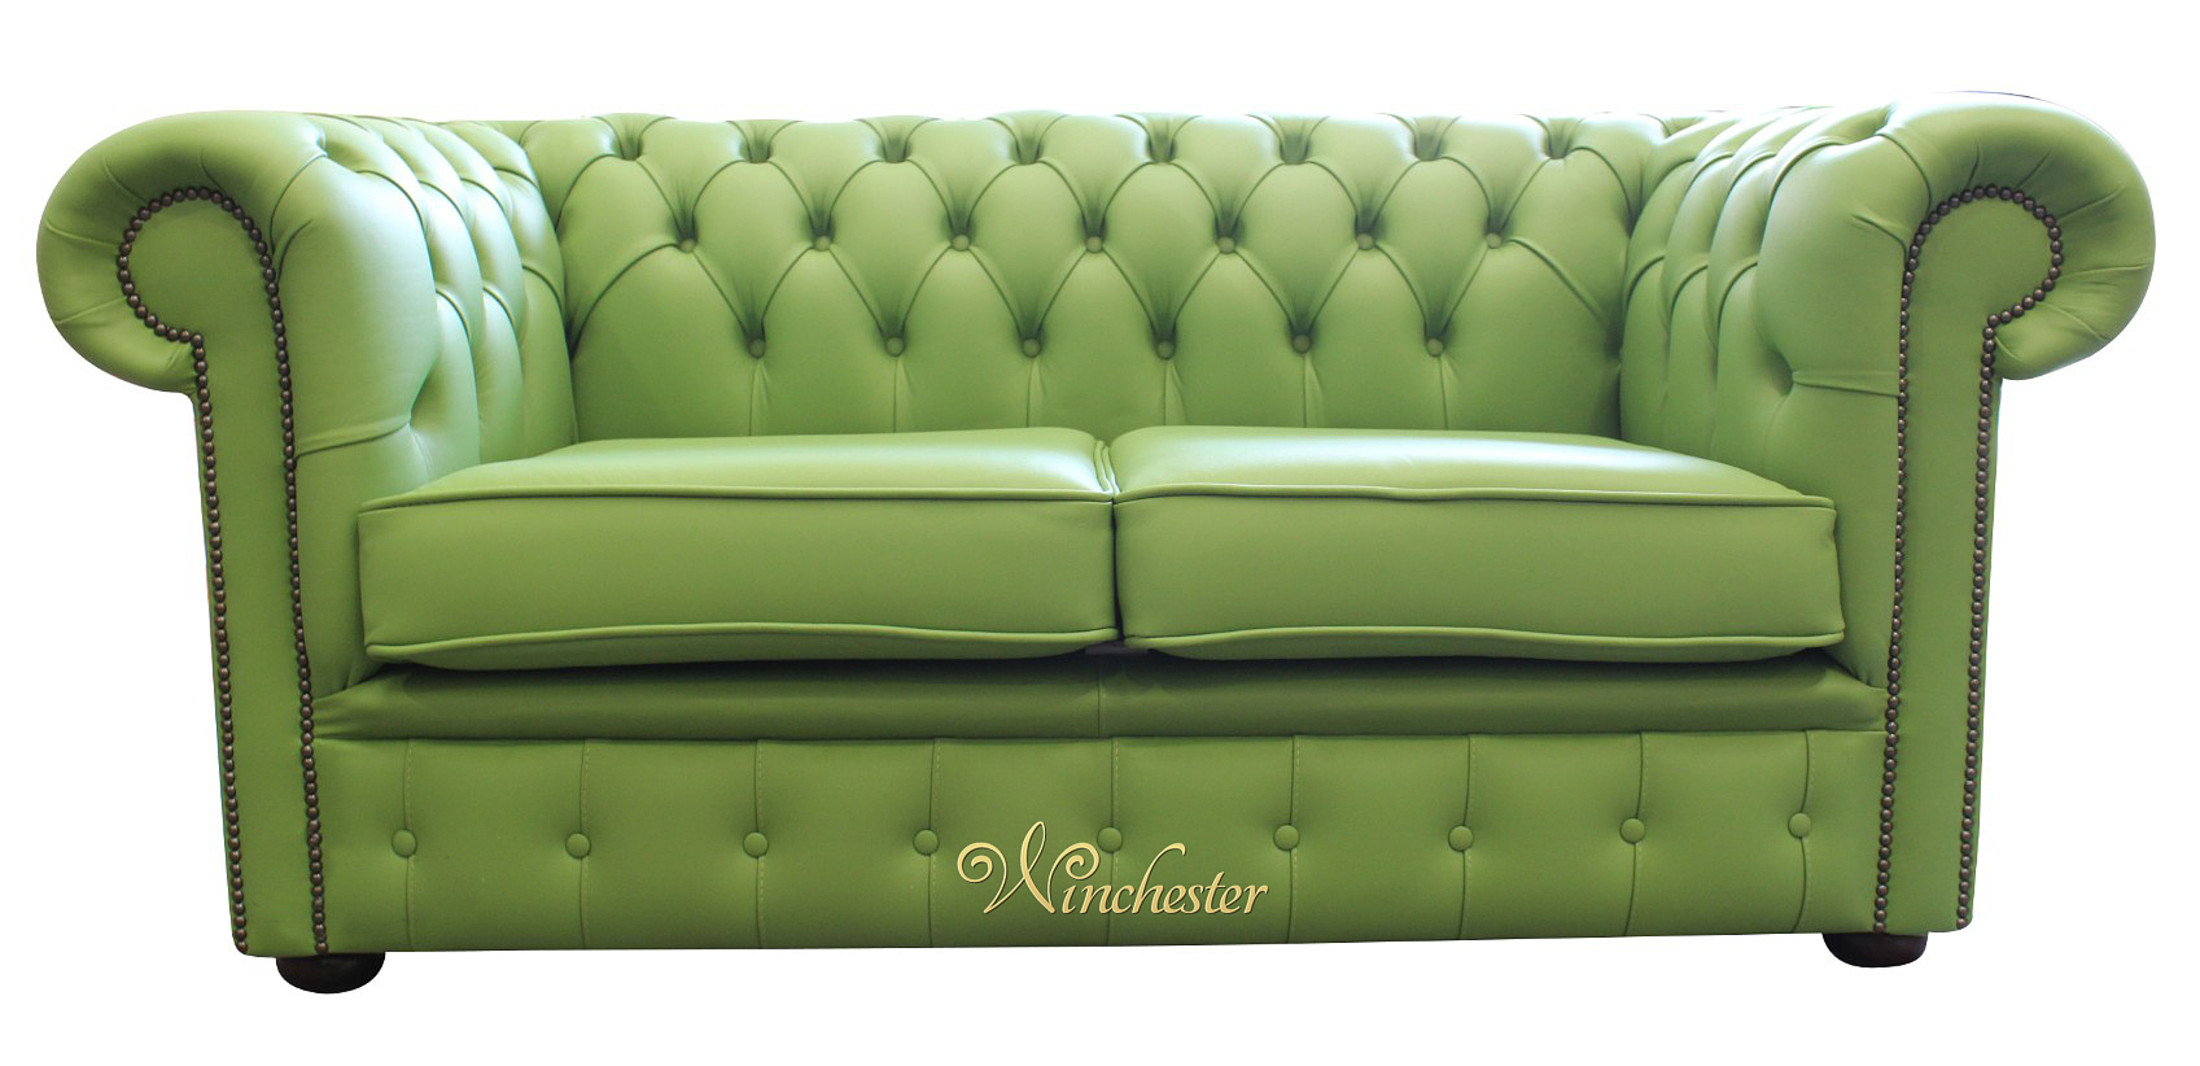 Chesterfield 2 Seater Apple Green Leather Sofa Settee Wc